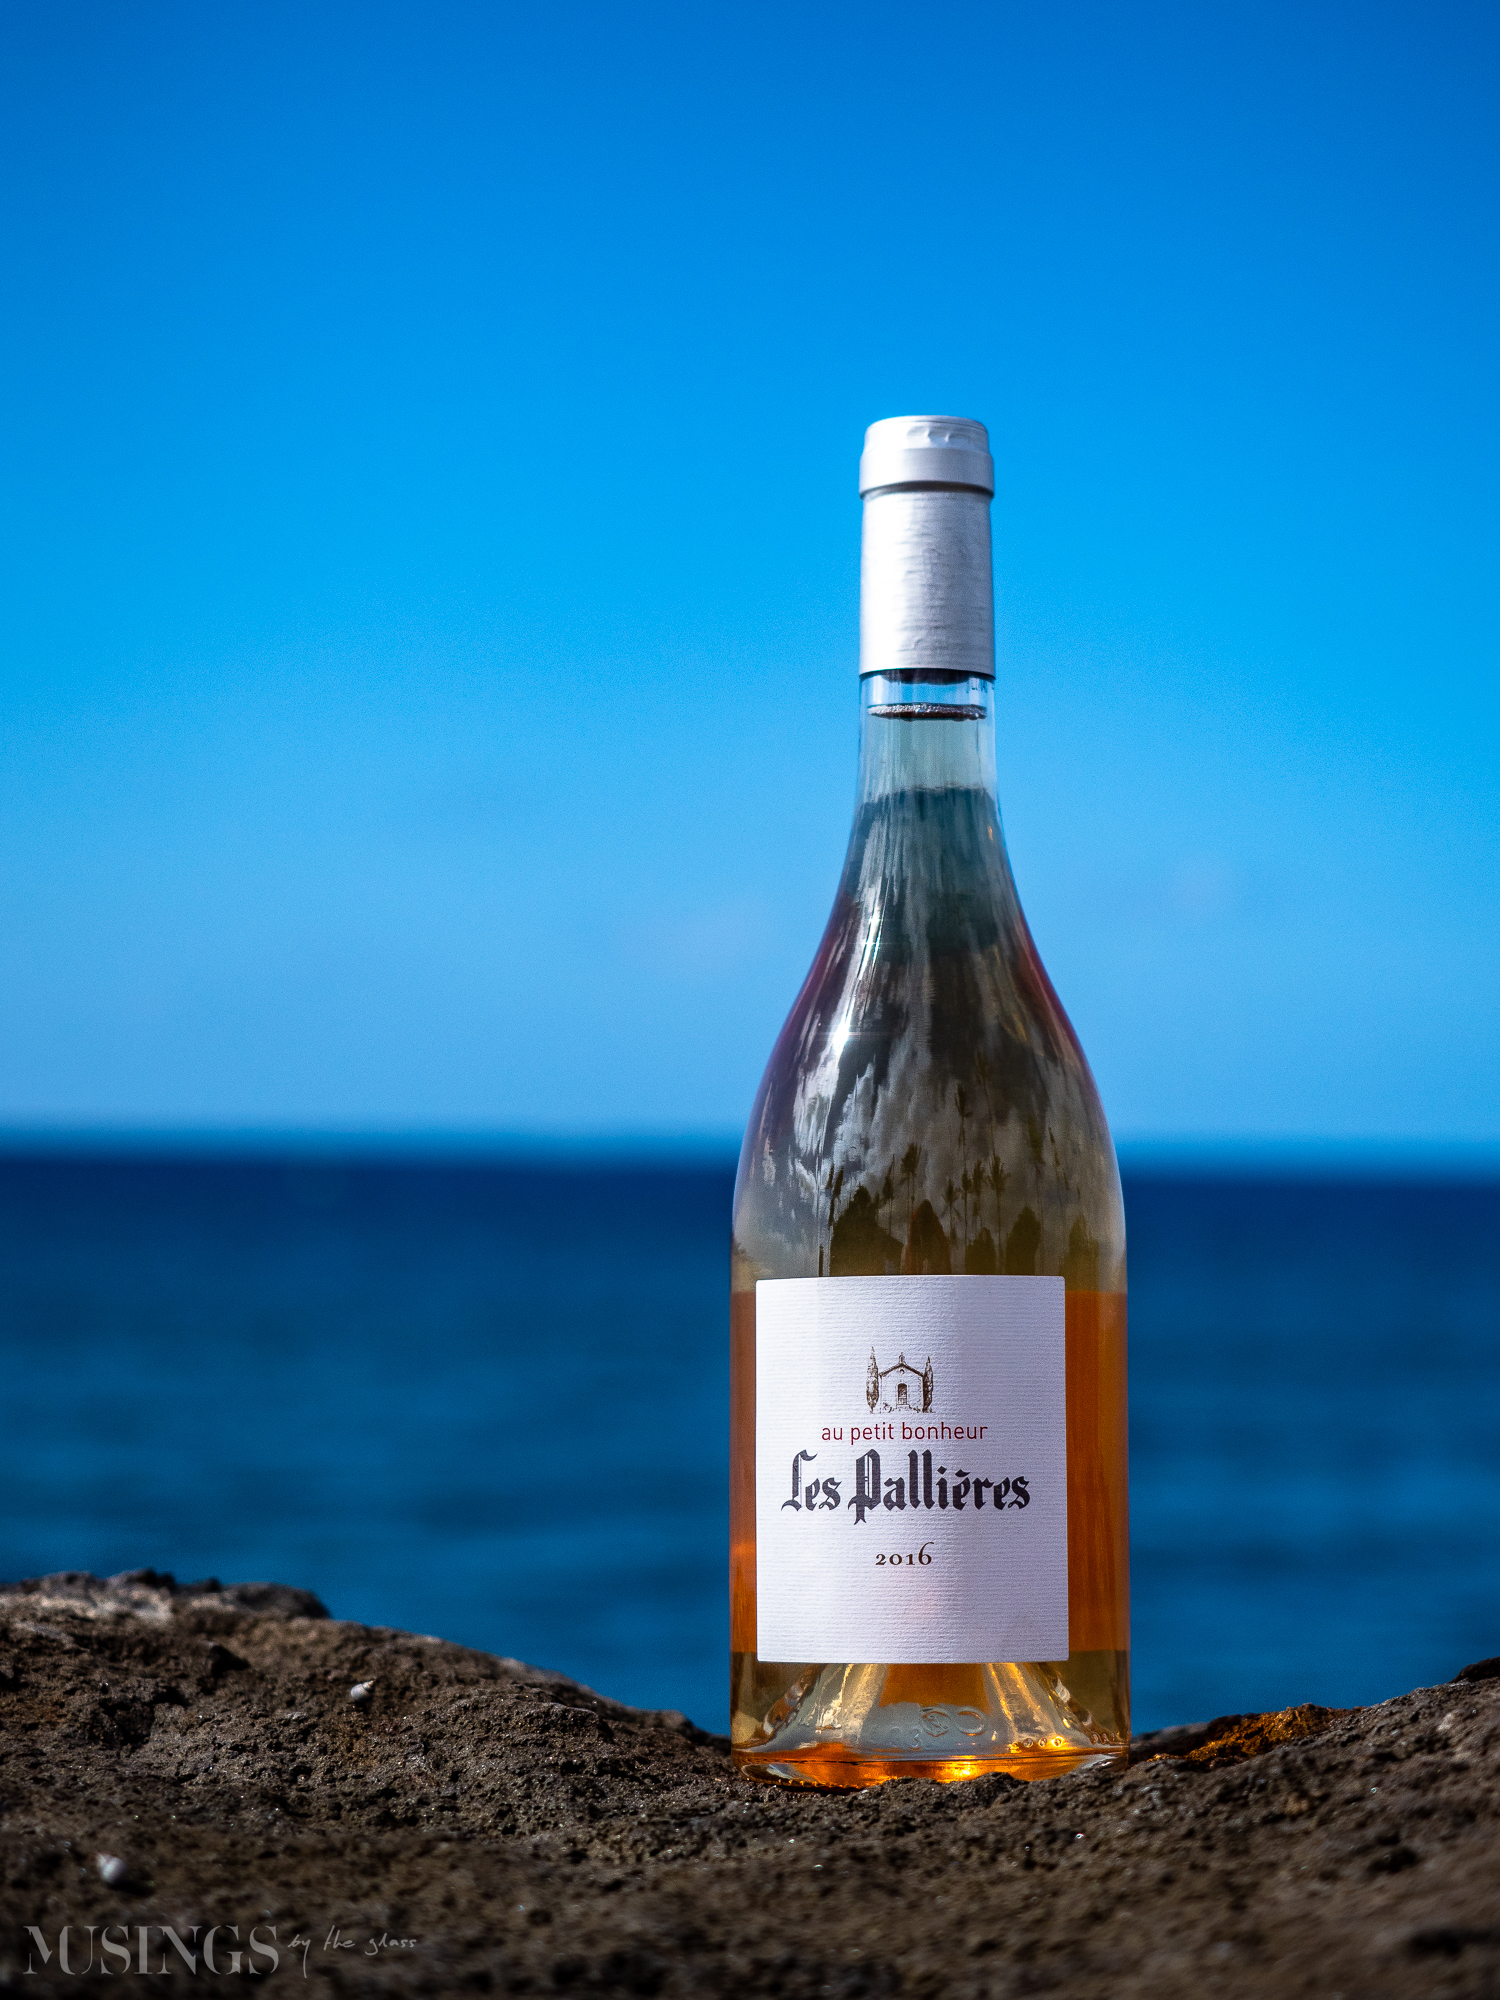 Musings by the Glass - Tasty Recommendations - Domaine Les Pallieres Rose Wine from Gigondas, Southern Rhone Valley, France